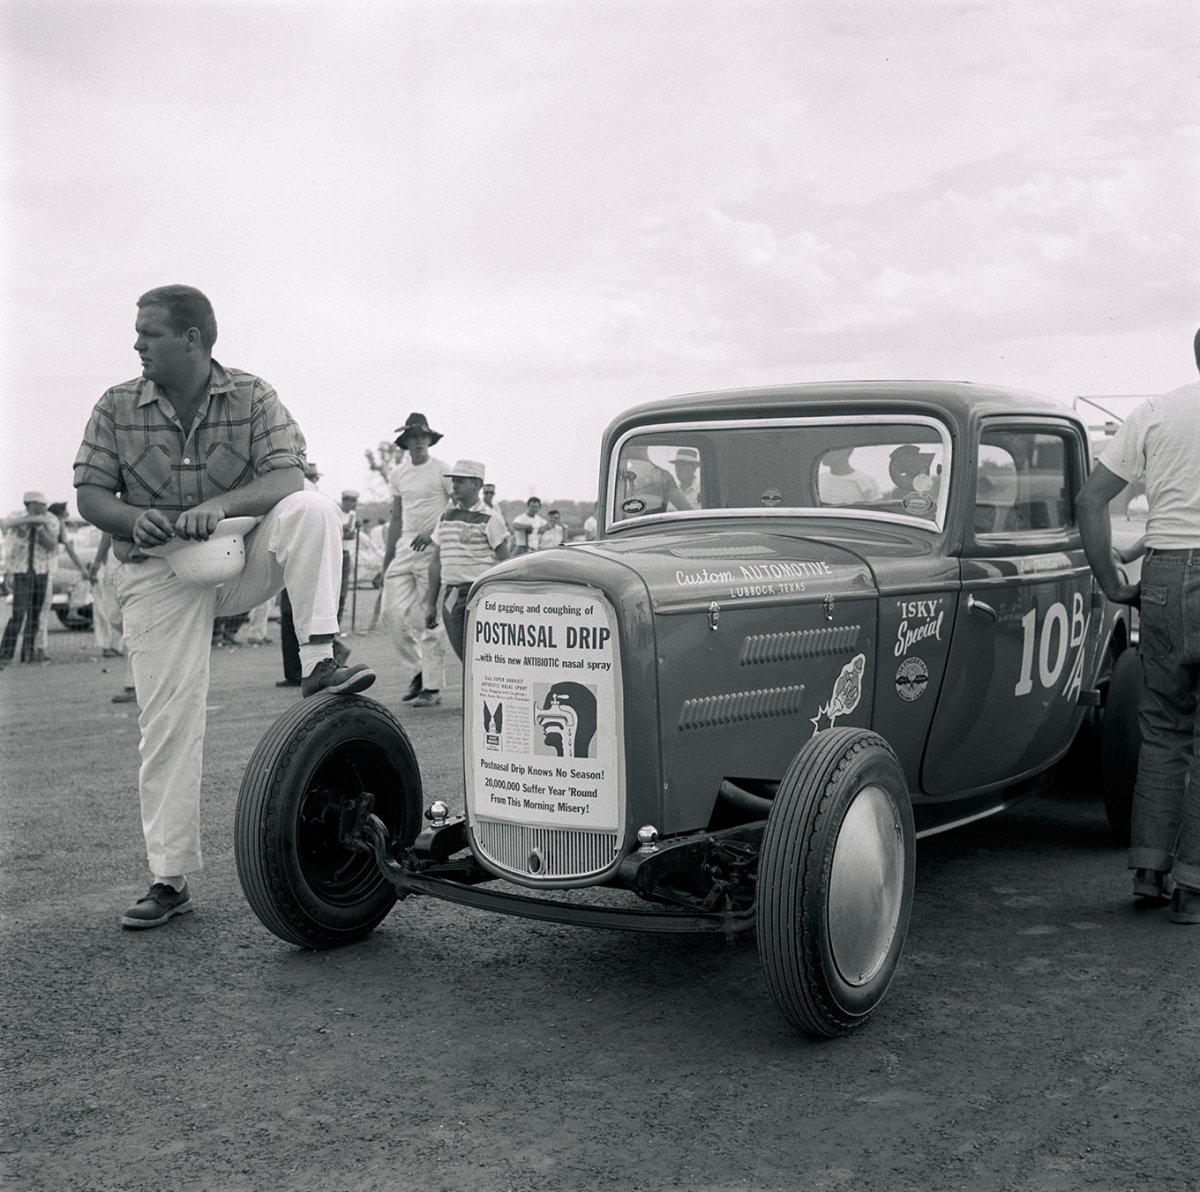 021-past-1956-deuce-coupe-nhra-nationals-front-1931-06_19560910_ROD-copy-2.jpg